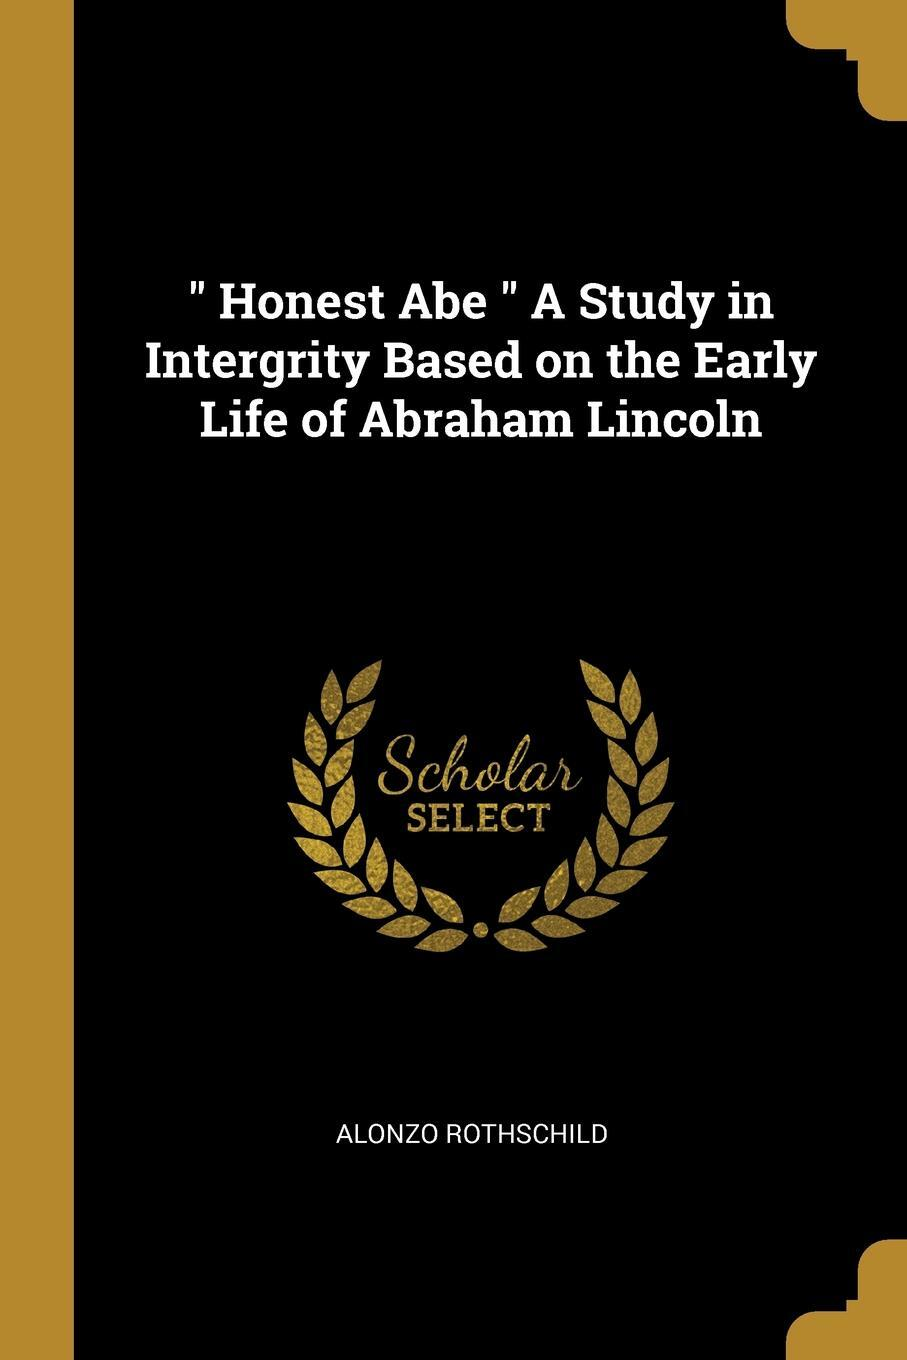 """Alonzo Rothschild. """" Honest Abe """" A Study in Intergrity Based on the Early Life of Abraham Lincoln"""